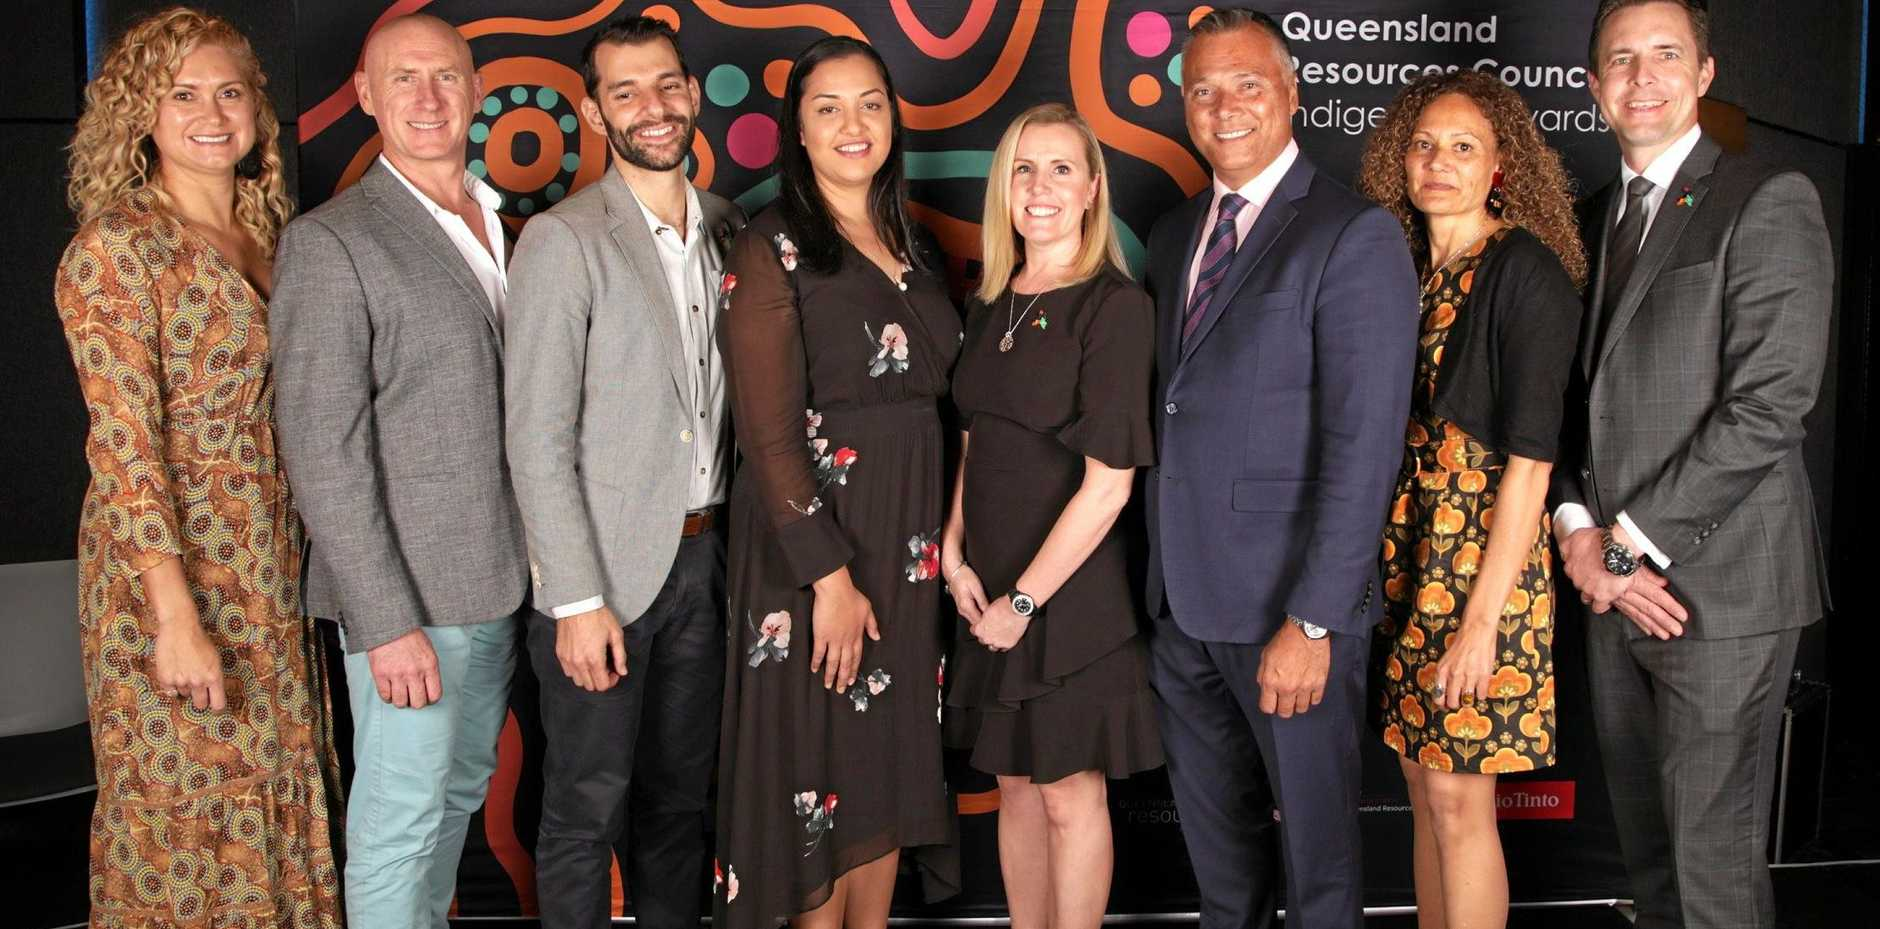 The QRC Indigenous Awards winners, from left, Dee Clarke, Anthony Galante, Josh Cox, Nyah Teiotu, Libby Ferrari, Stan Grant, Barbara Sheehy, and James Palmer.